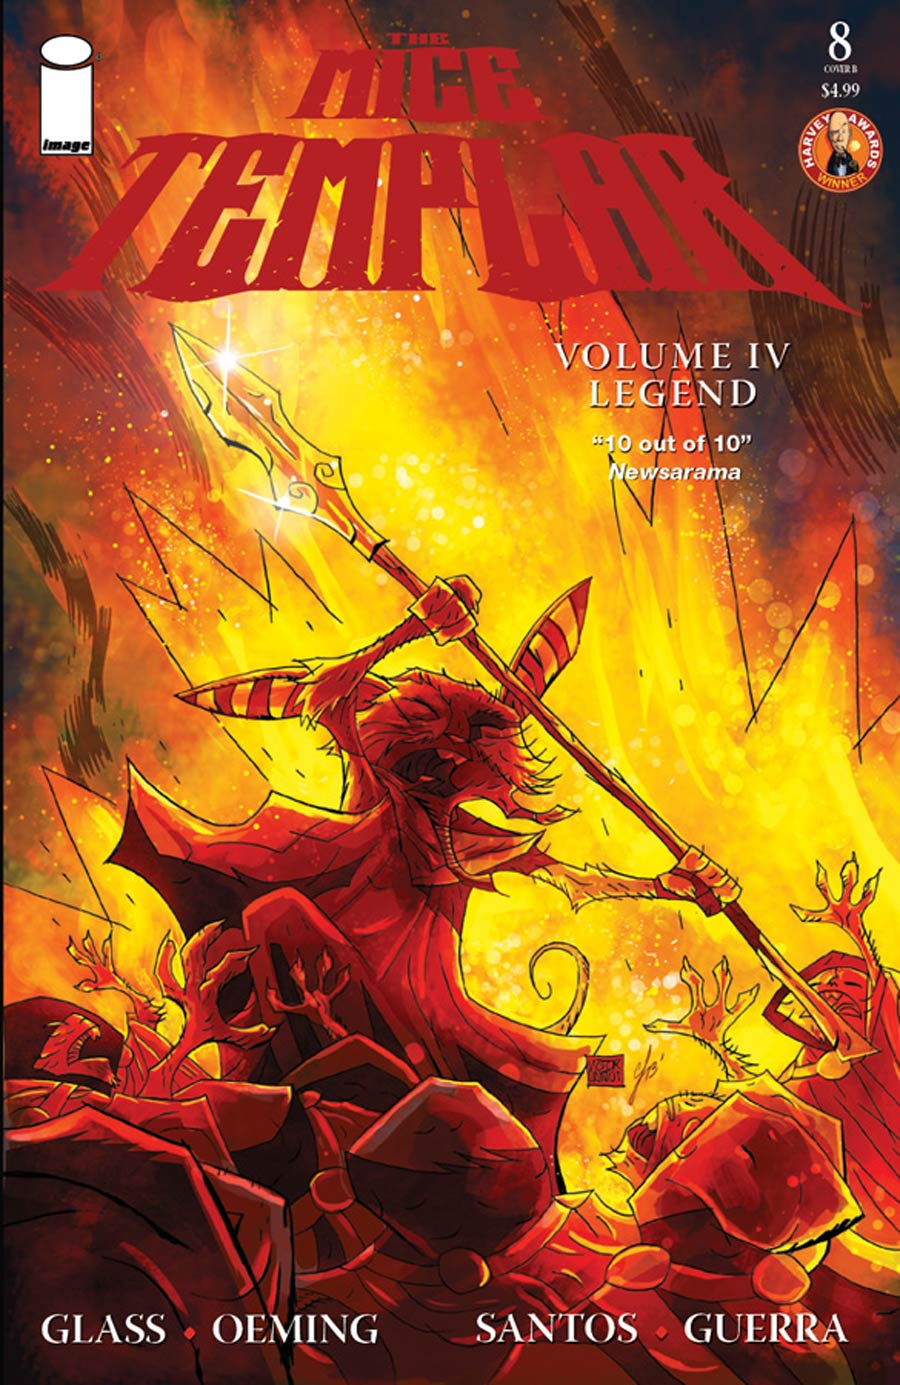 Mice Templar Vol 4 Legend #8 Cover B Victor Santos & Chandra Free